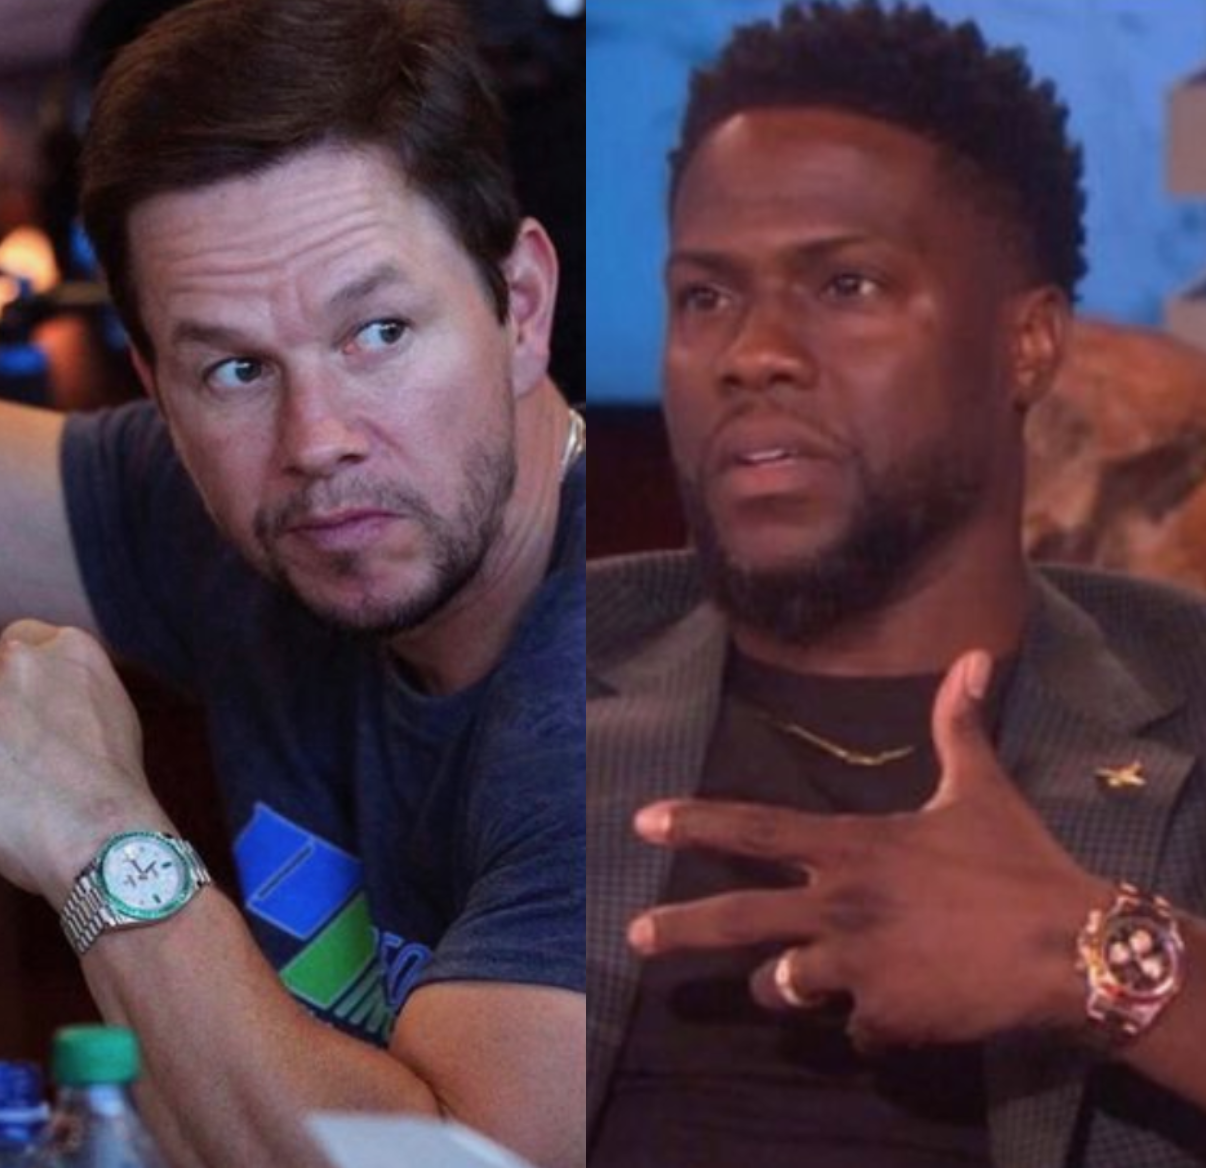 CELEBRITY WATCH DEATH MATCH: Kevin Hart Vs. Mark Wahlberg, a Patek and Rolex-only battle for the ages